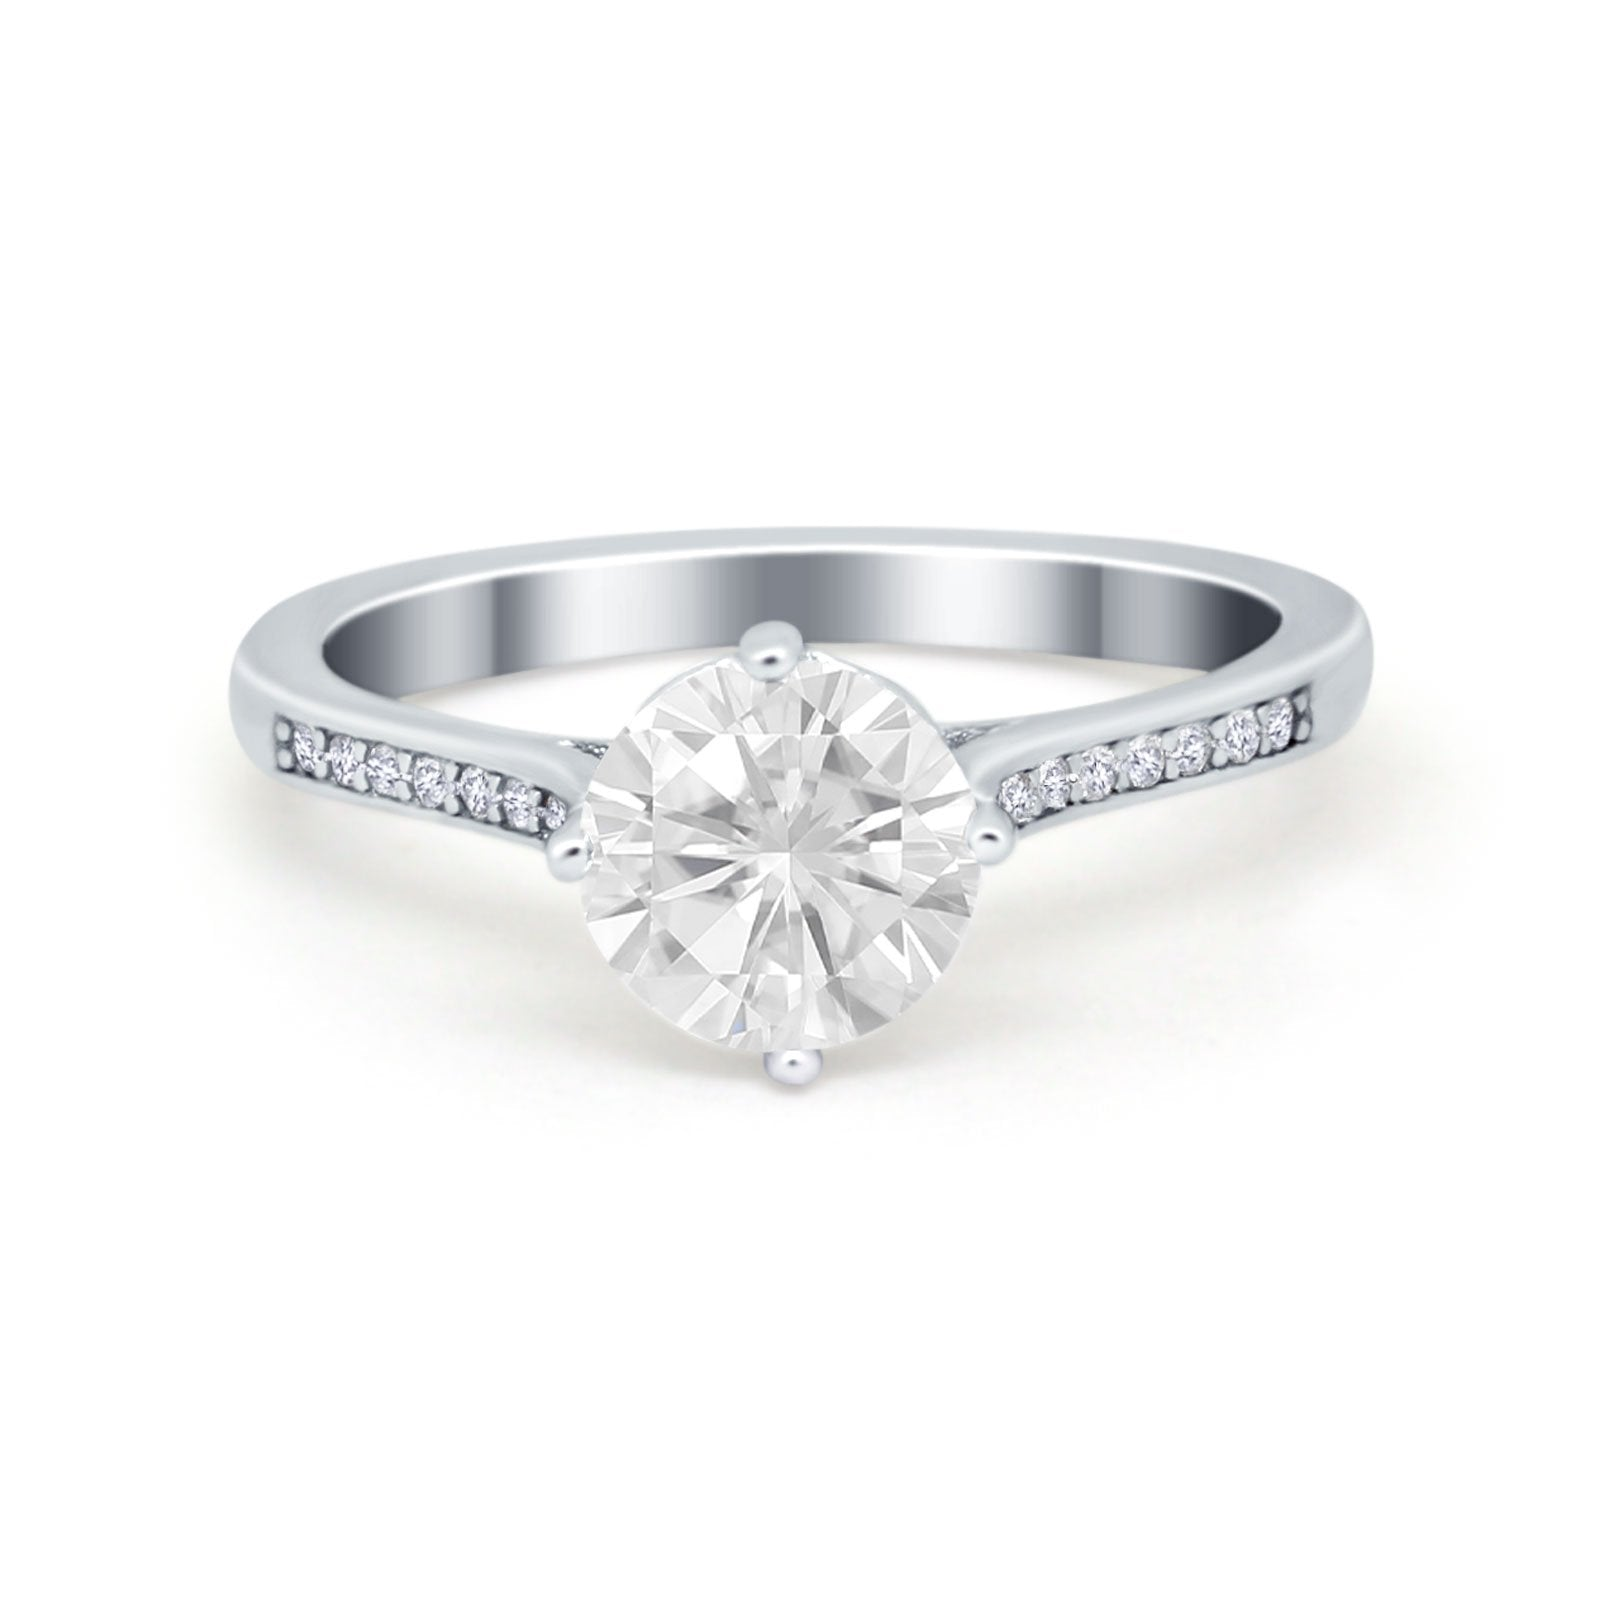 Solitaire Art Deco Wedding Ring Round Simulated Cubic Zirconia 925 Sterling Silver